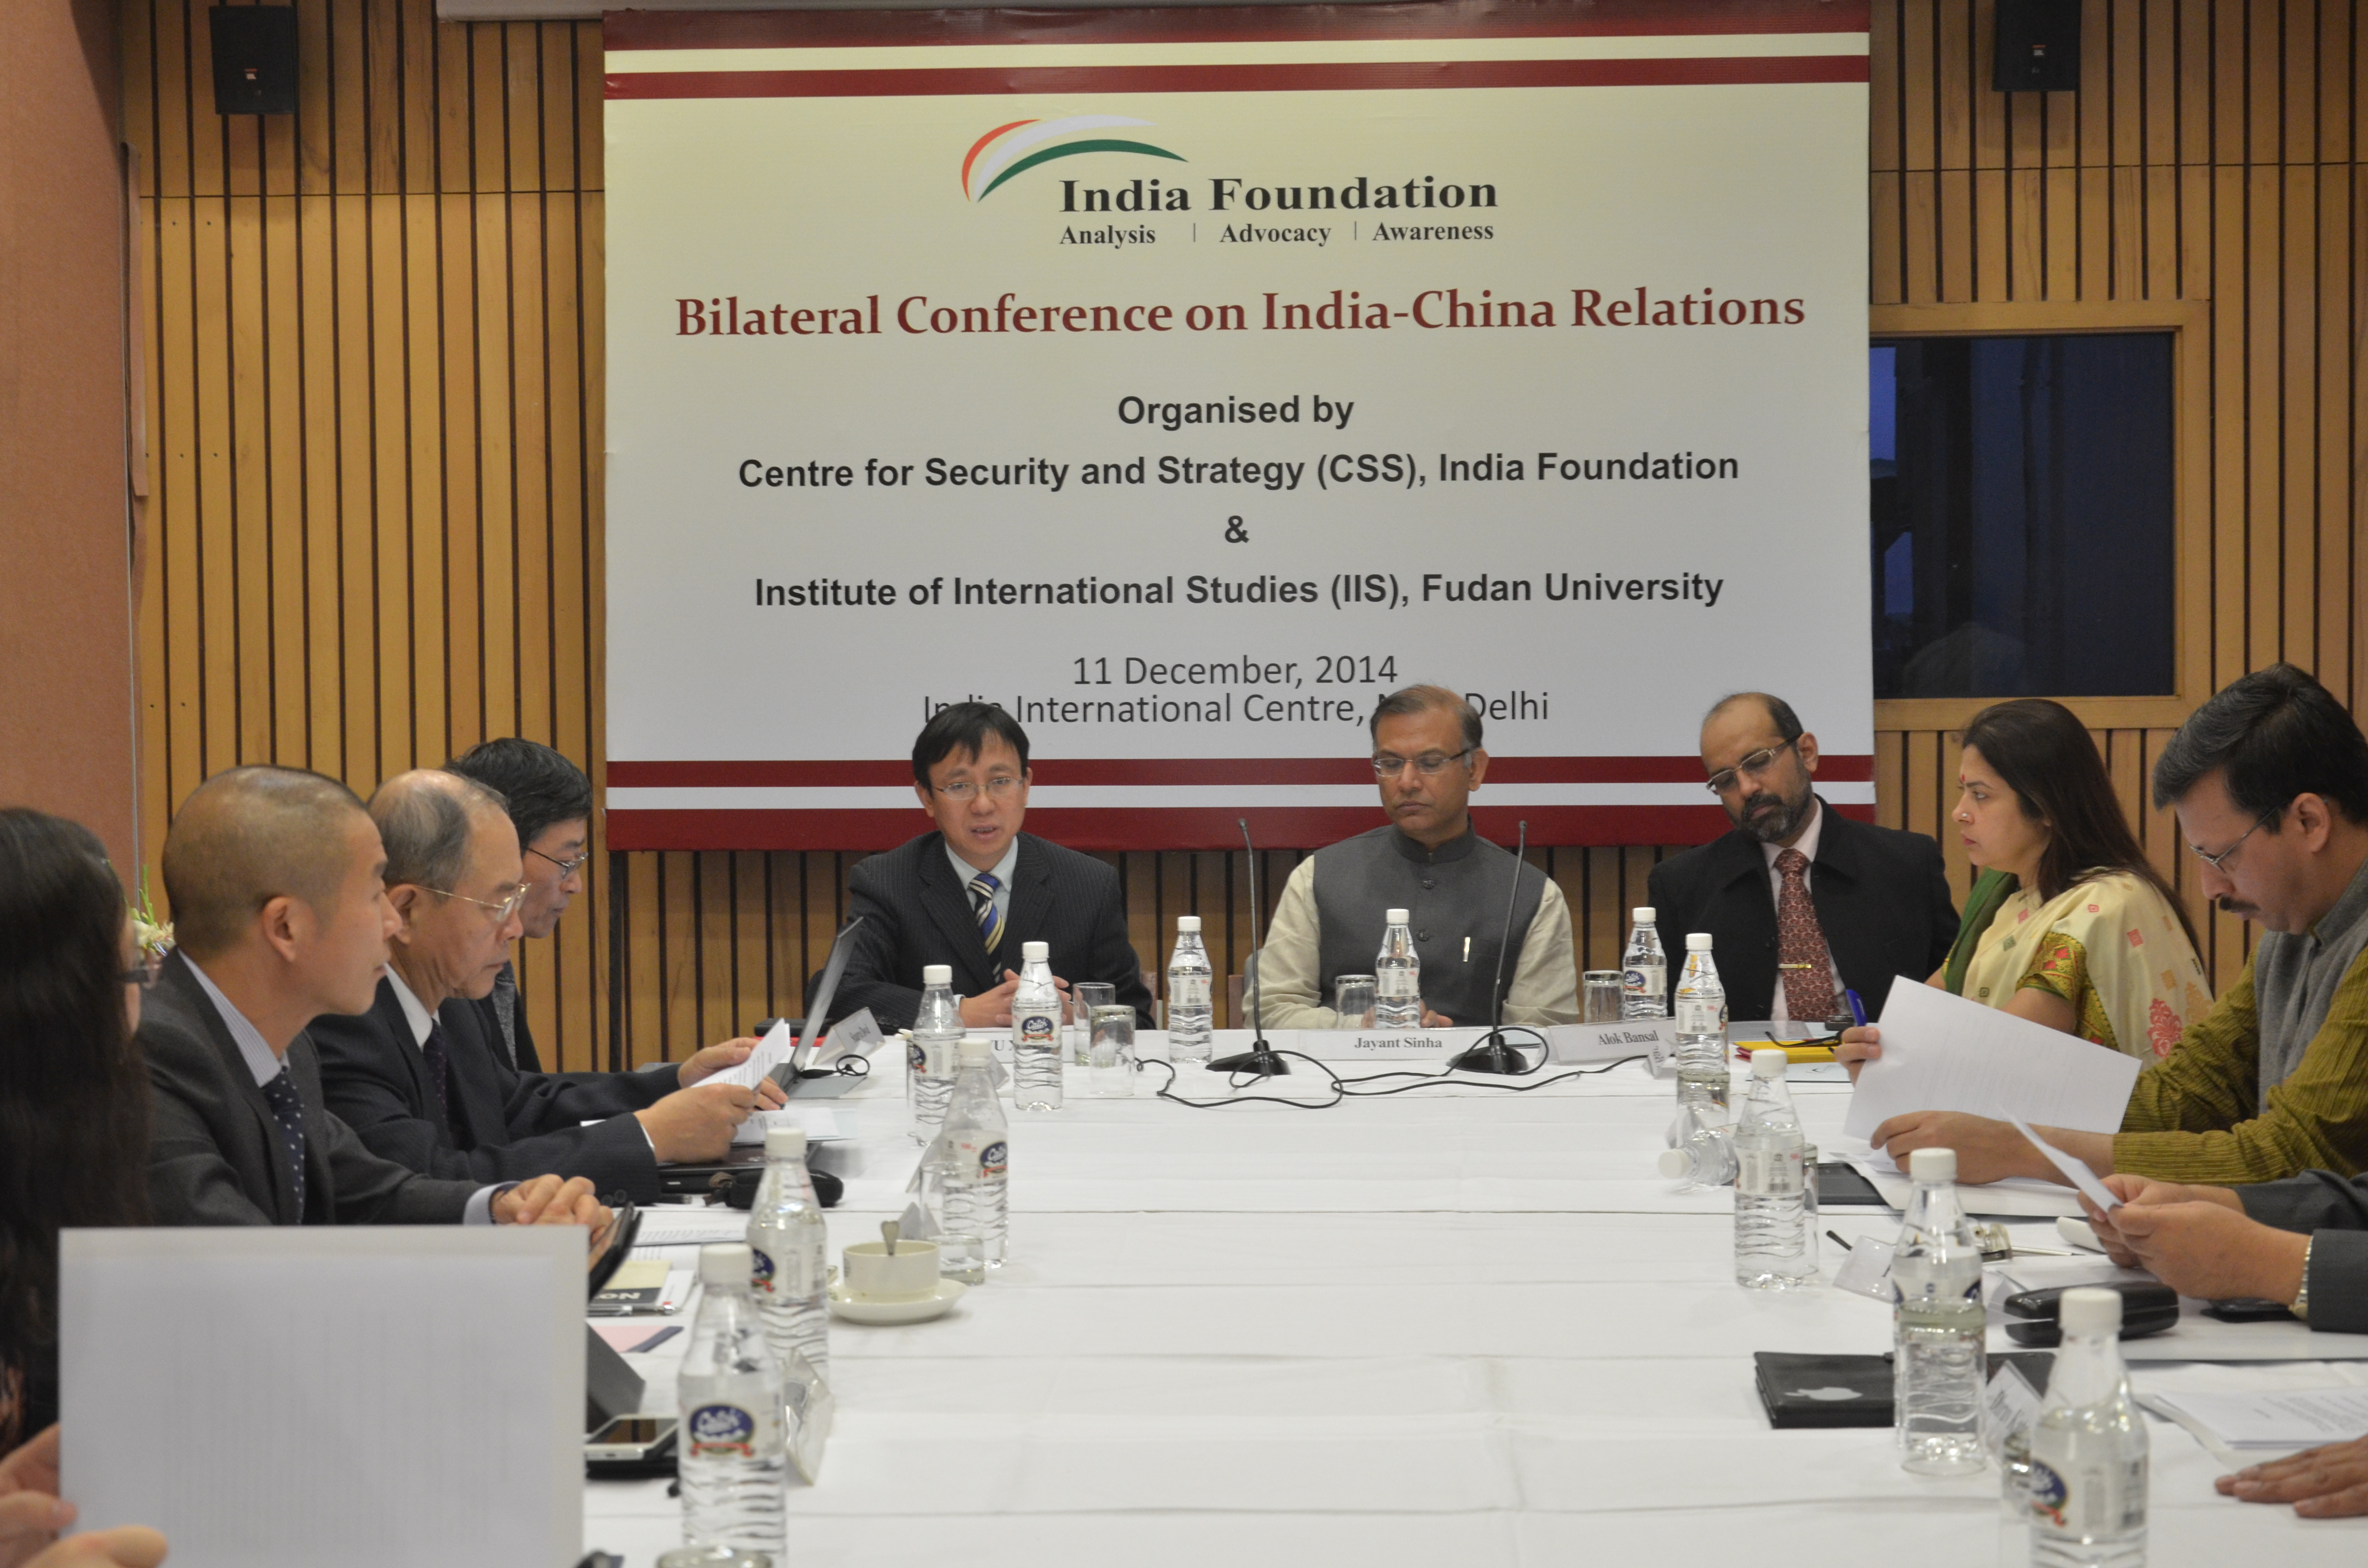 Bilateral Conference on India-China Relations